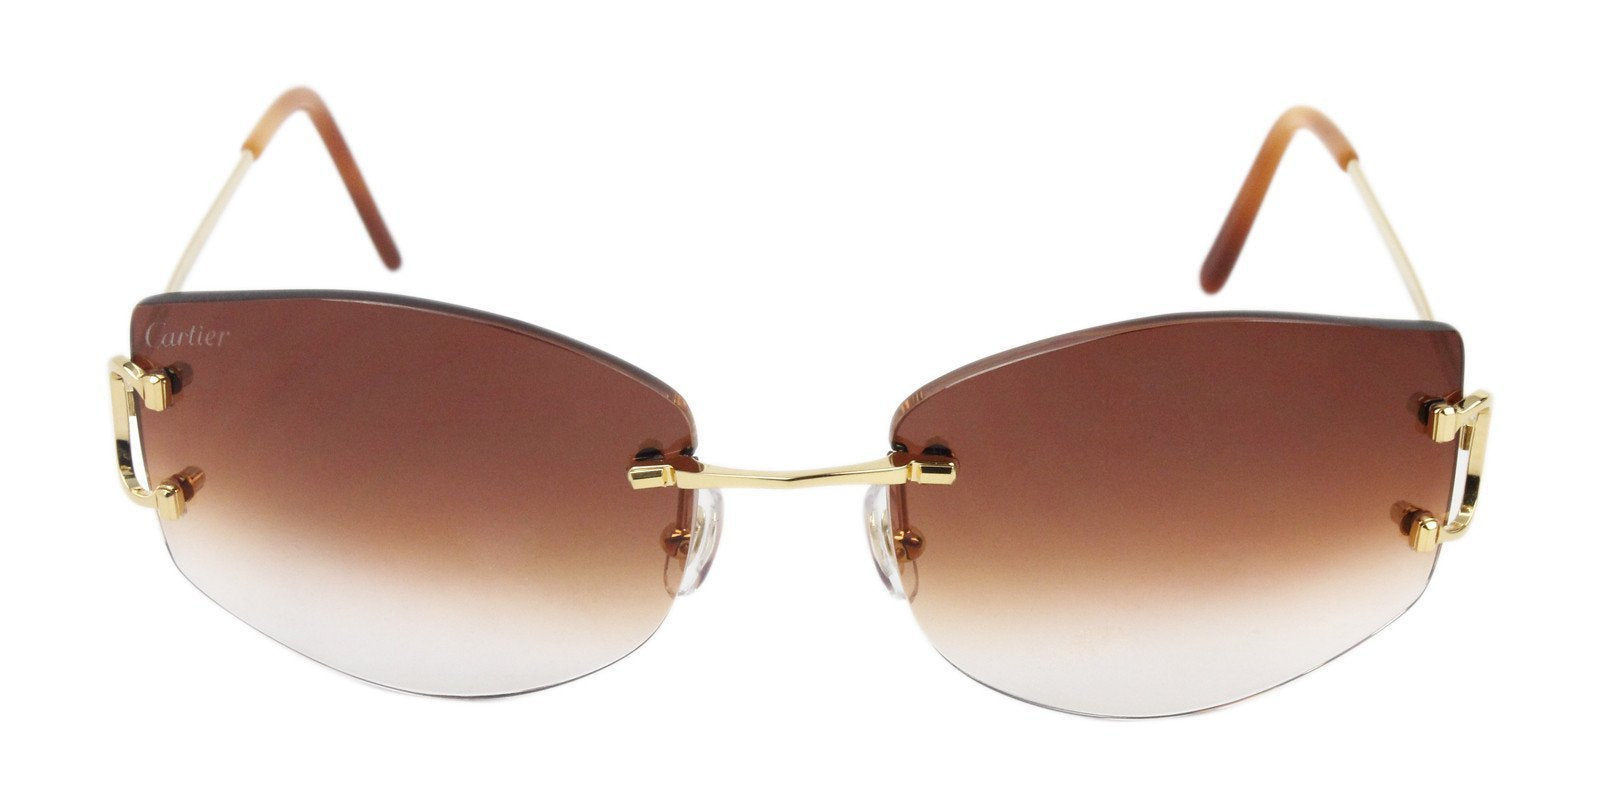 Cartier - Classic C Decor Gold Rimless Unisex Sunglasses - 55mm-Sunglasses-Designer Eyes